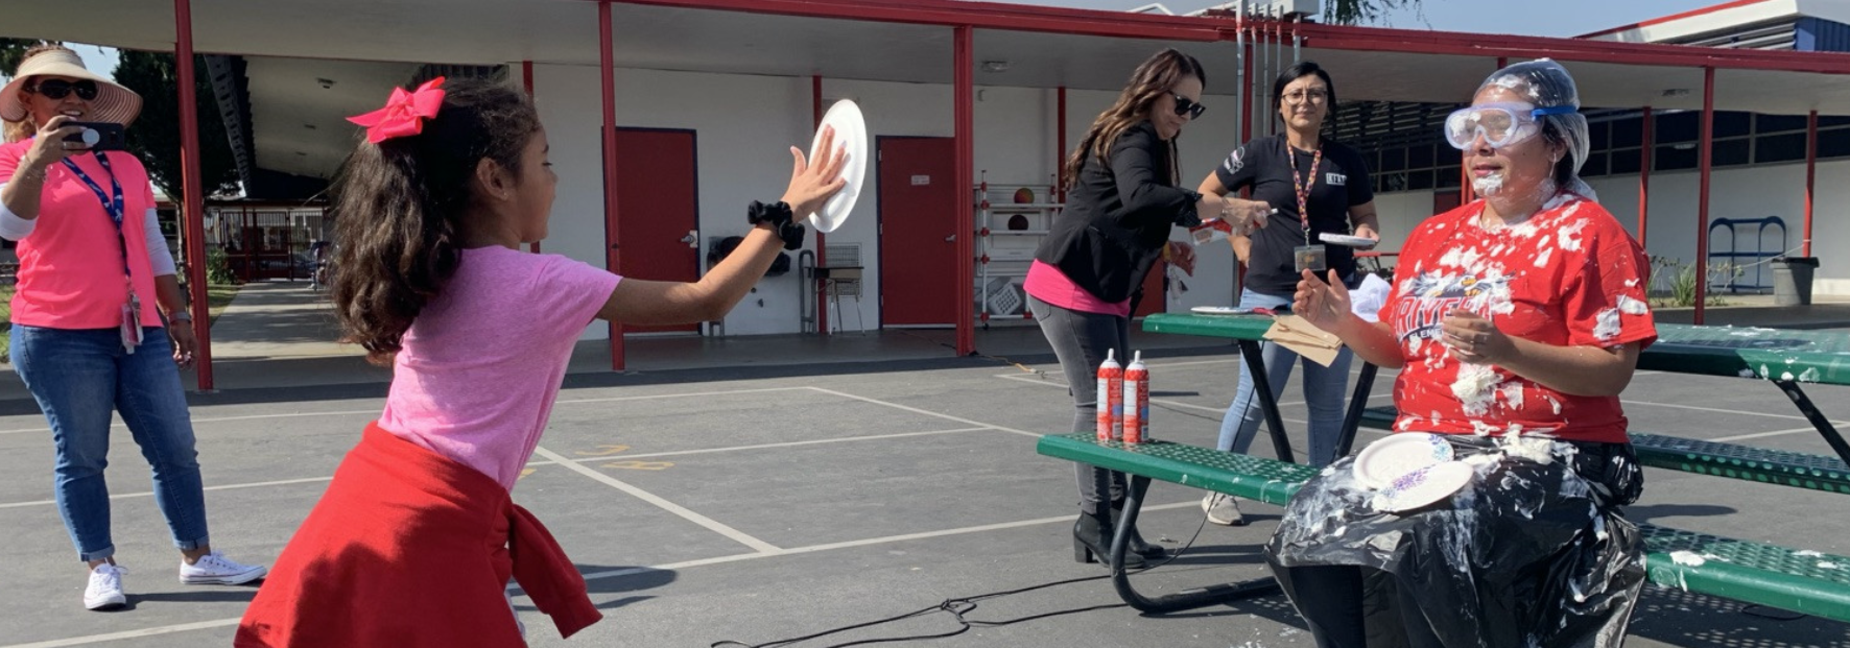 Our EAGLES were able to pie Ms. Renteria to celebrate their achievements!